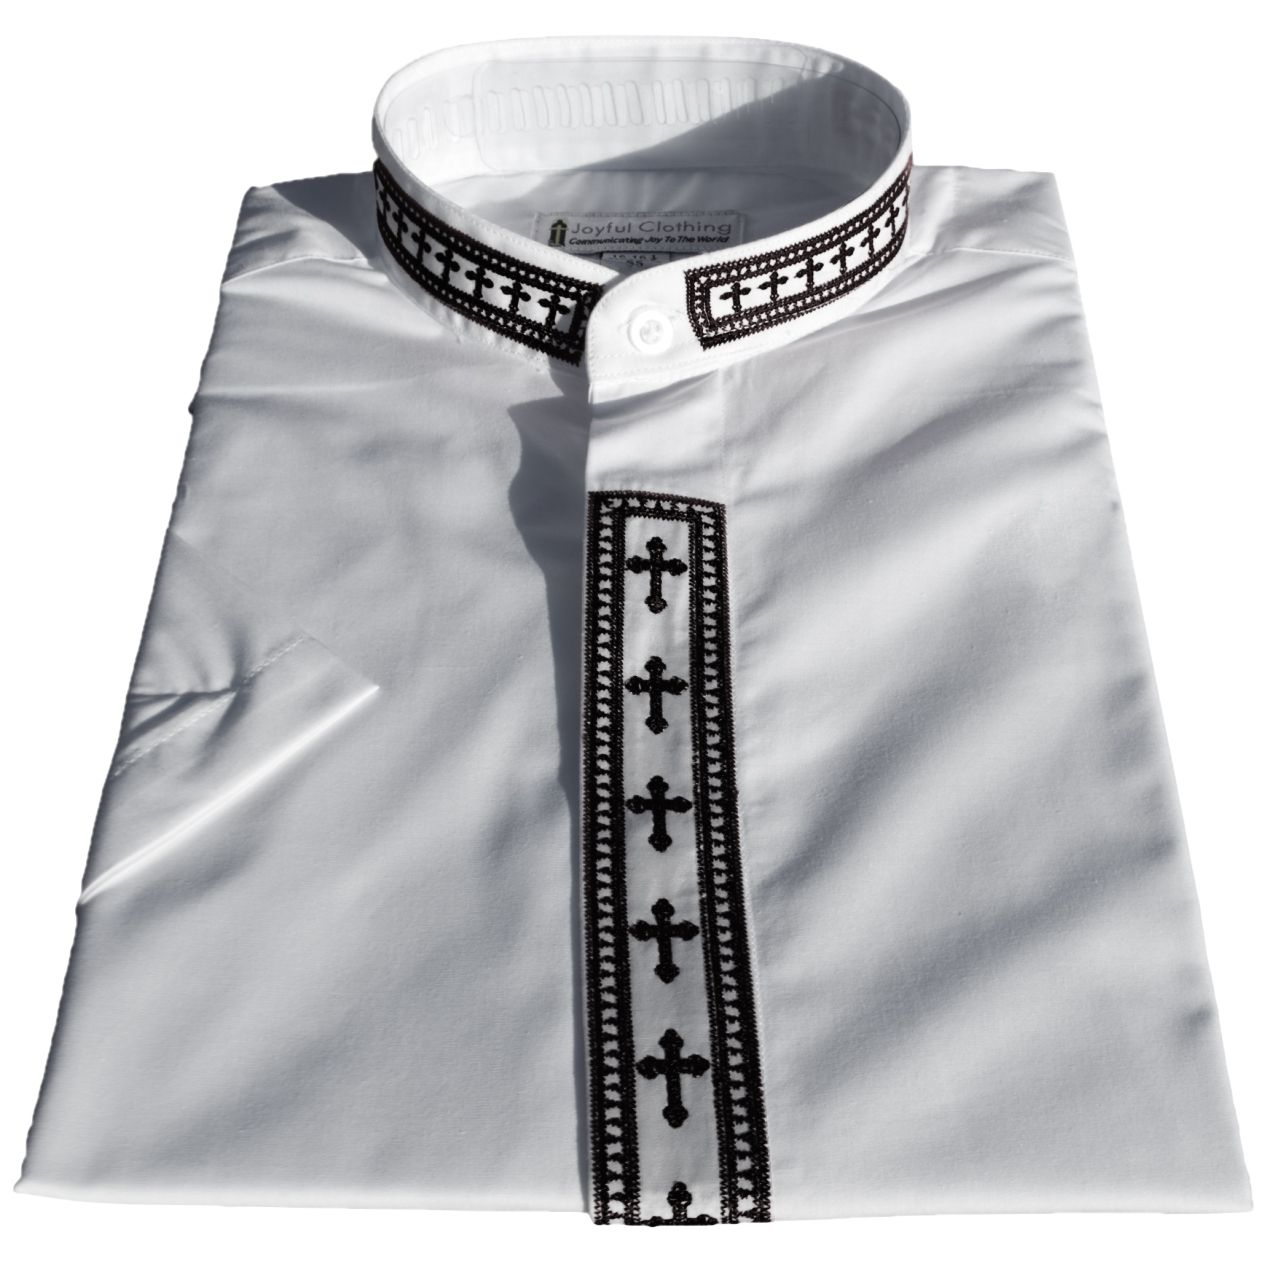 766. Women's Short-Sleeve Clergy Shirt With Fine Embroidery - White/Black